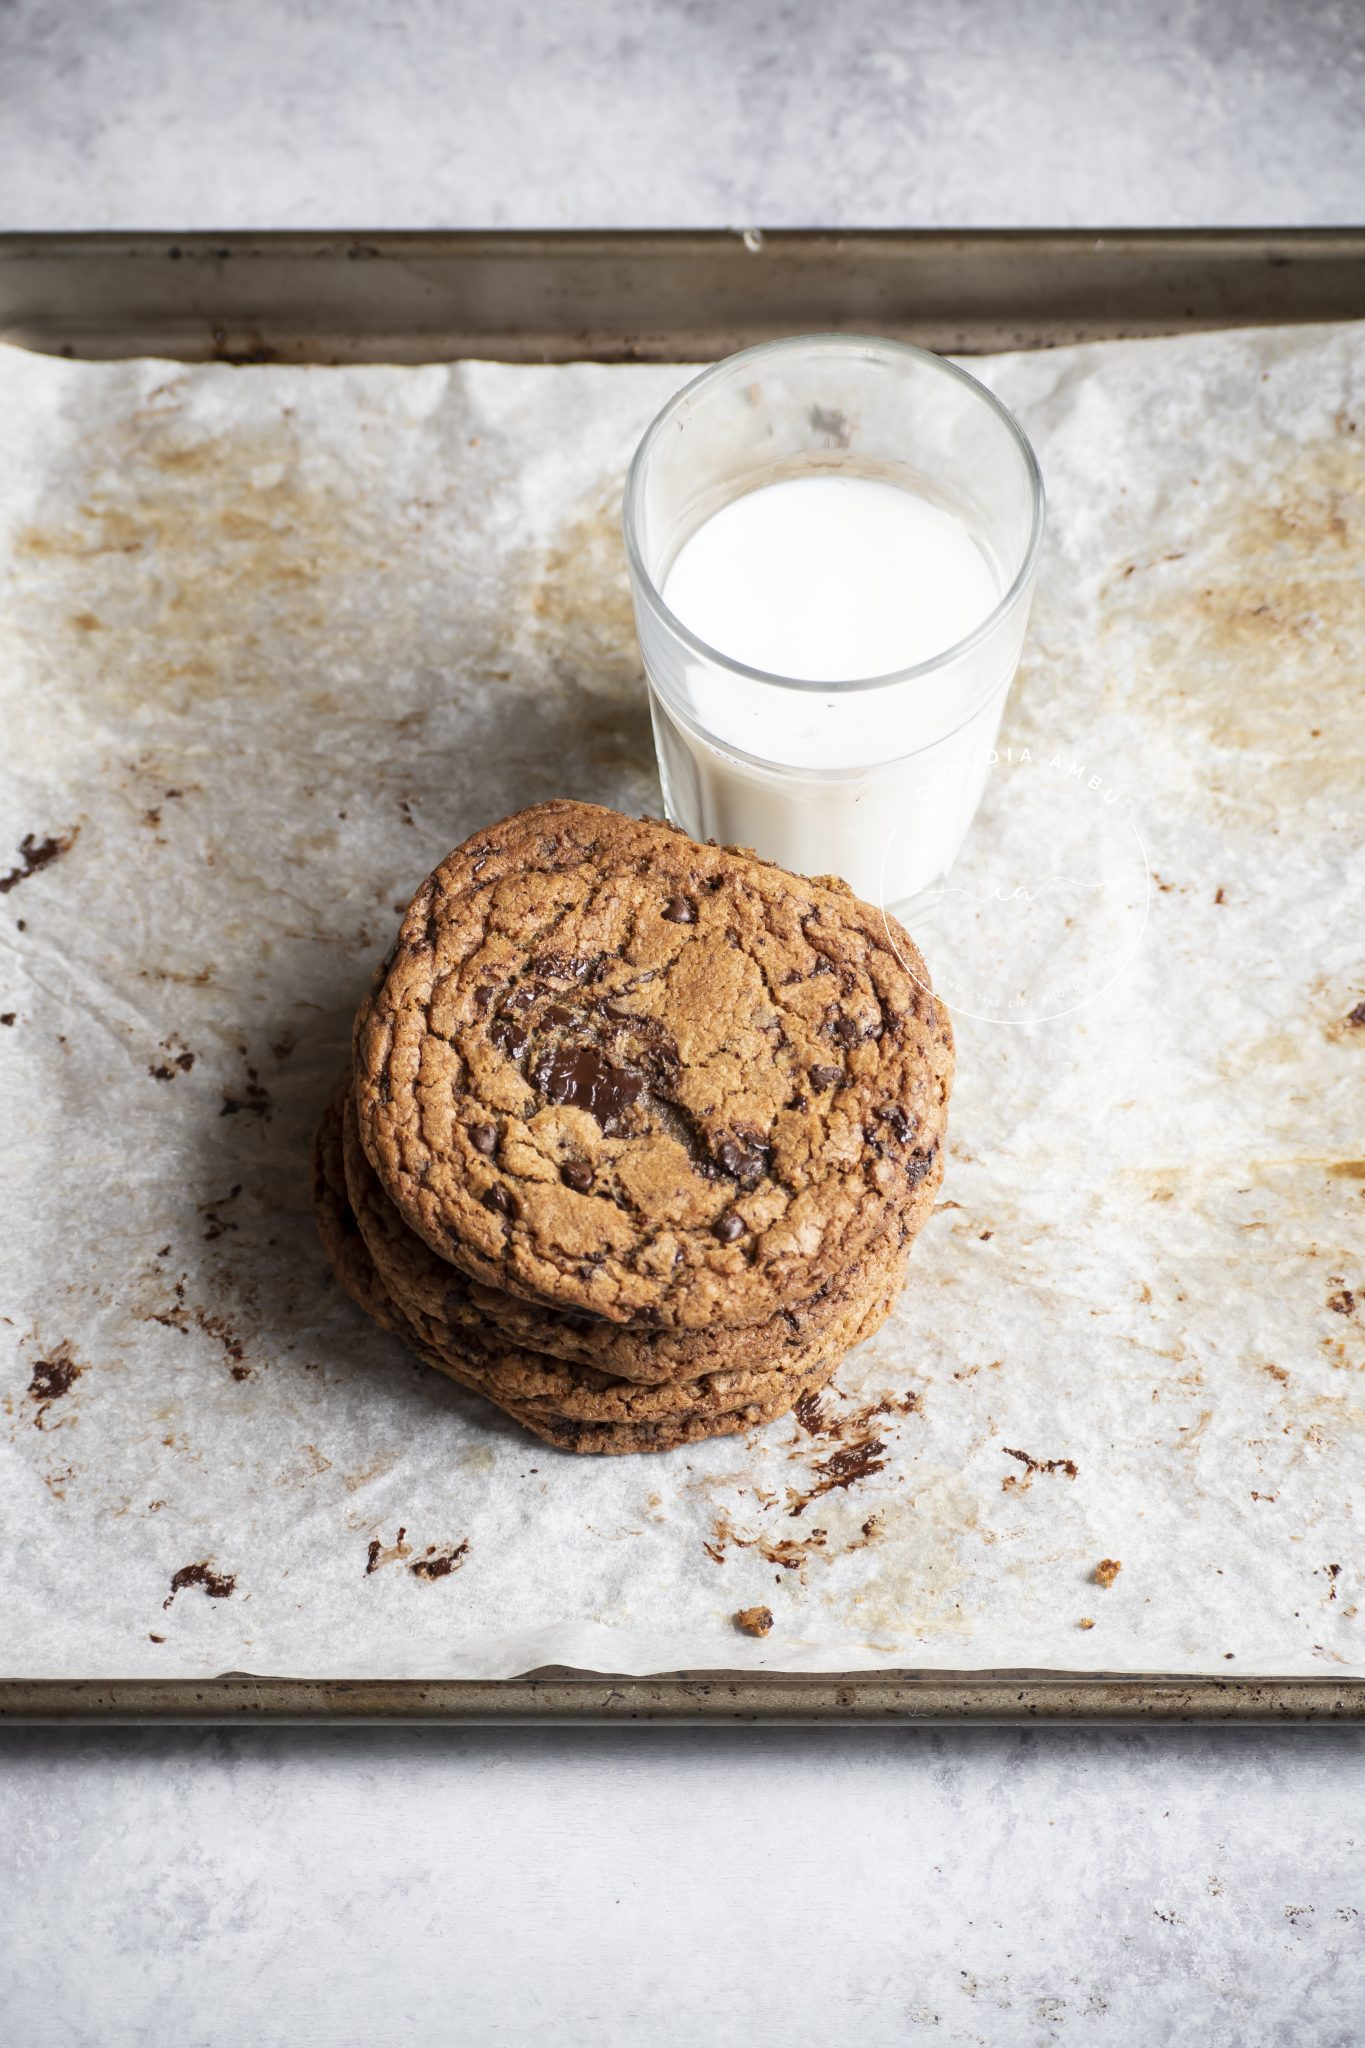 Chocolate chip cookies (a really yum recipe)